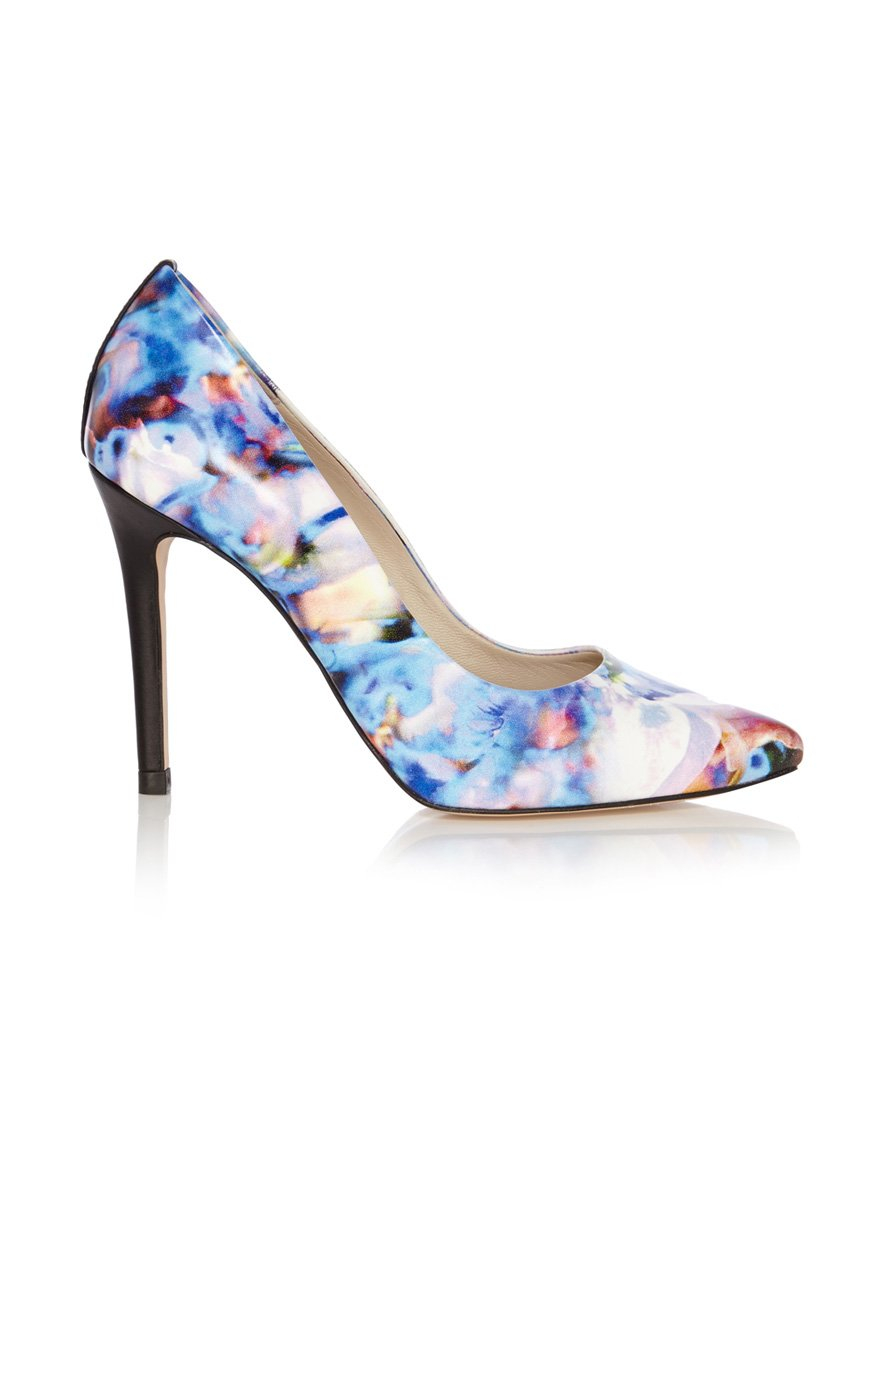 Karen Millen Floral Ankle-Strap Pumps free shipping exclusive cheap sale extremely buy cheap online 2015 new cheap online JZecUE